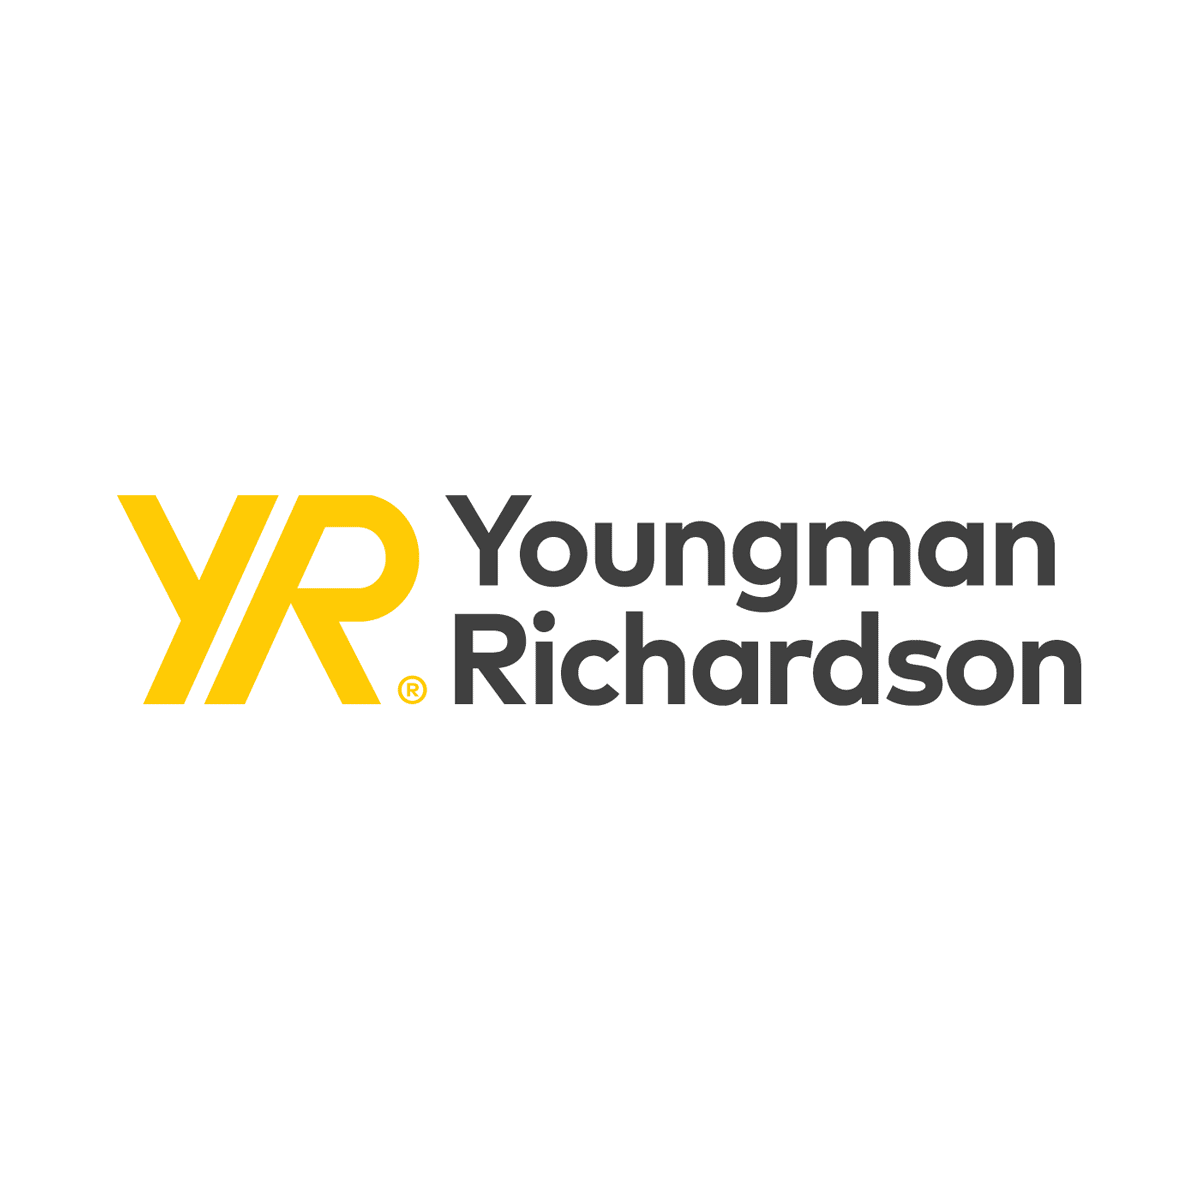 Resources | YRCO